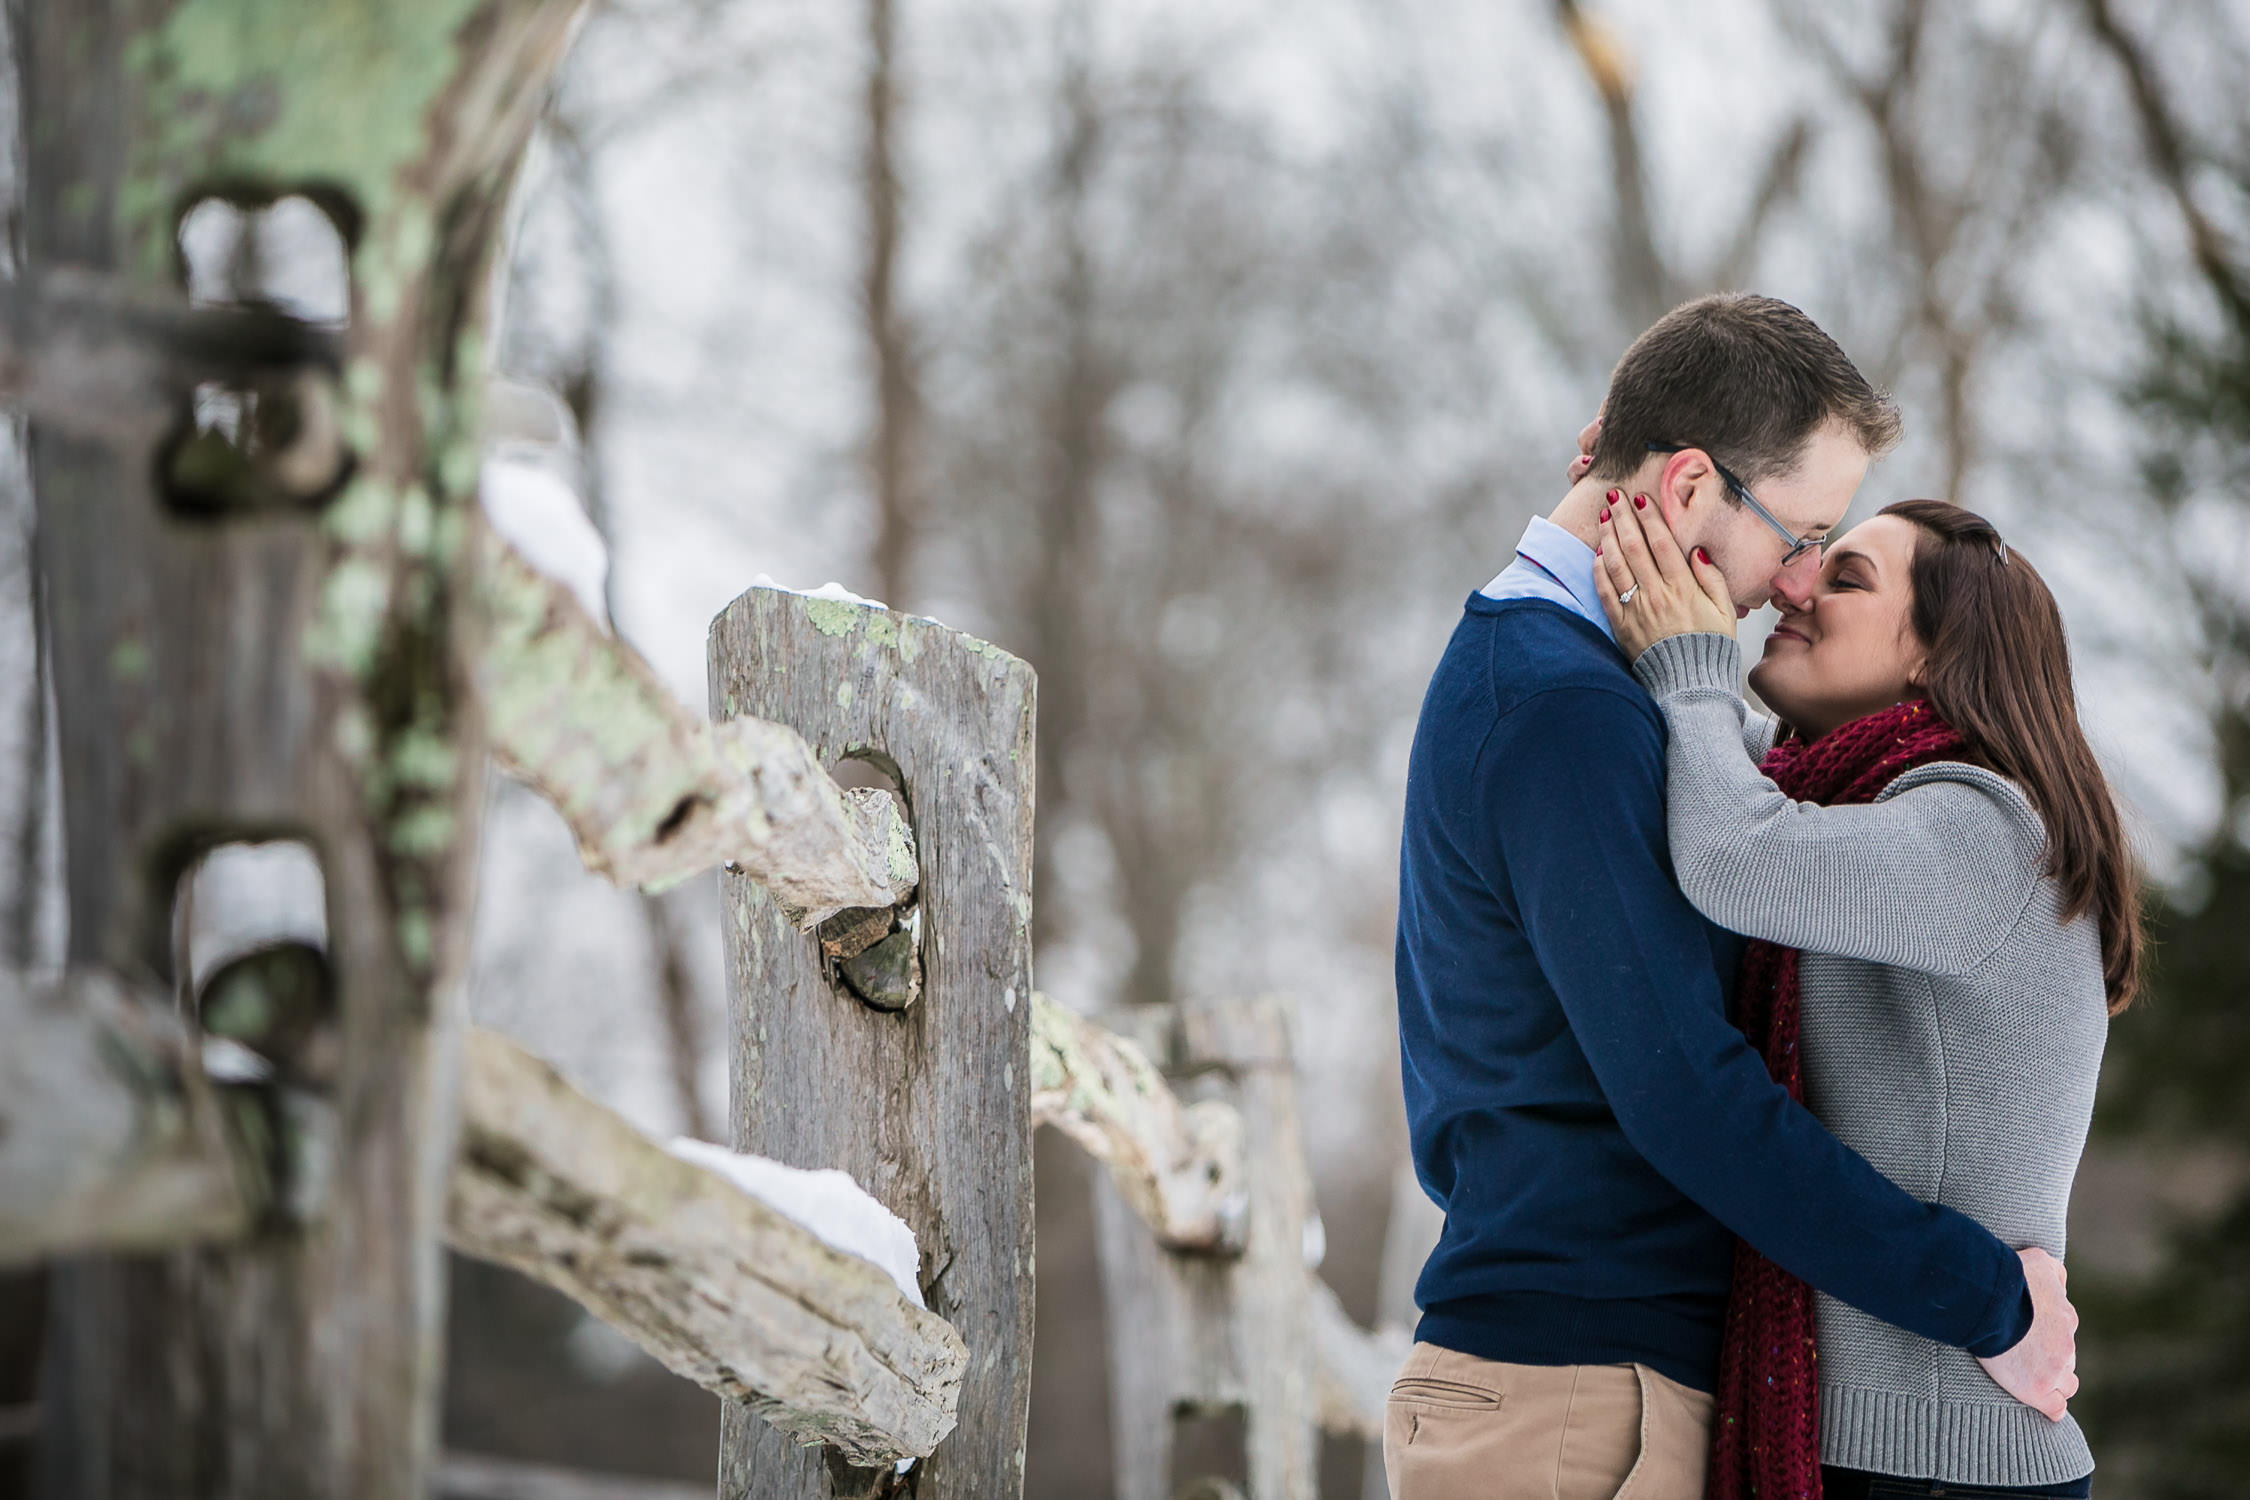 engagement session in the winter, sudbury ma wayside in grist mill, fresh snow portraits, intimate and romantic